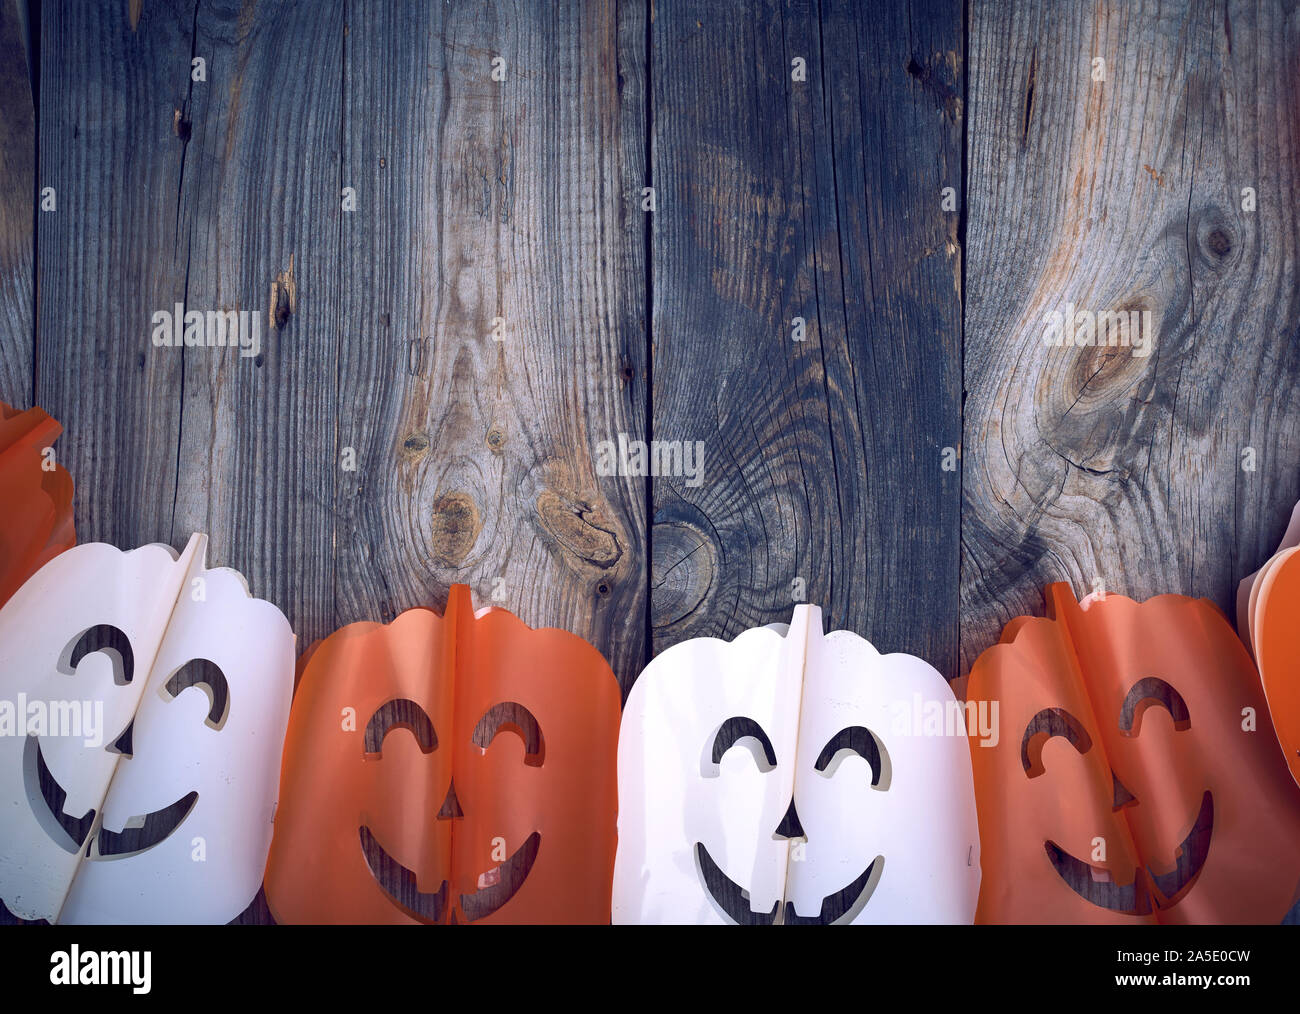 Plastic Garland On With Carved Figures Of Pumpkins Gray Wooden Background Backdrop For Halloween Stock Photo Alamy